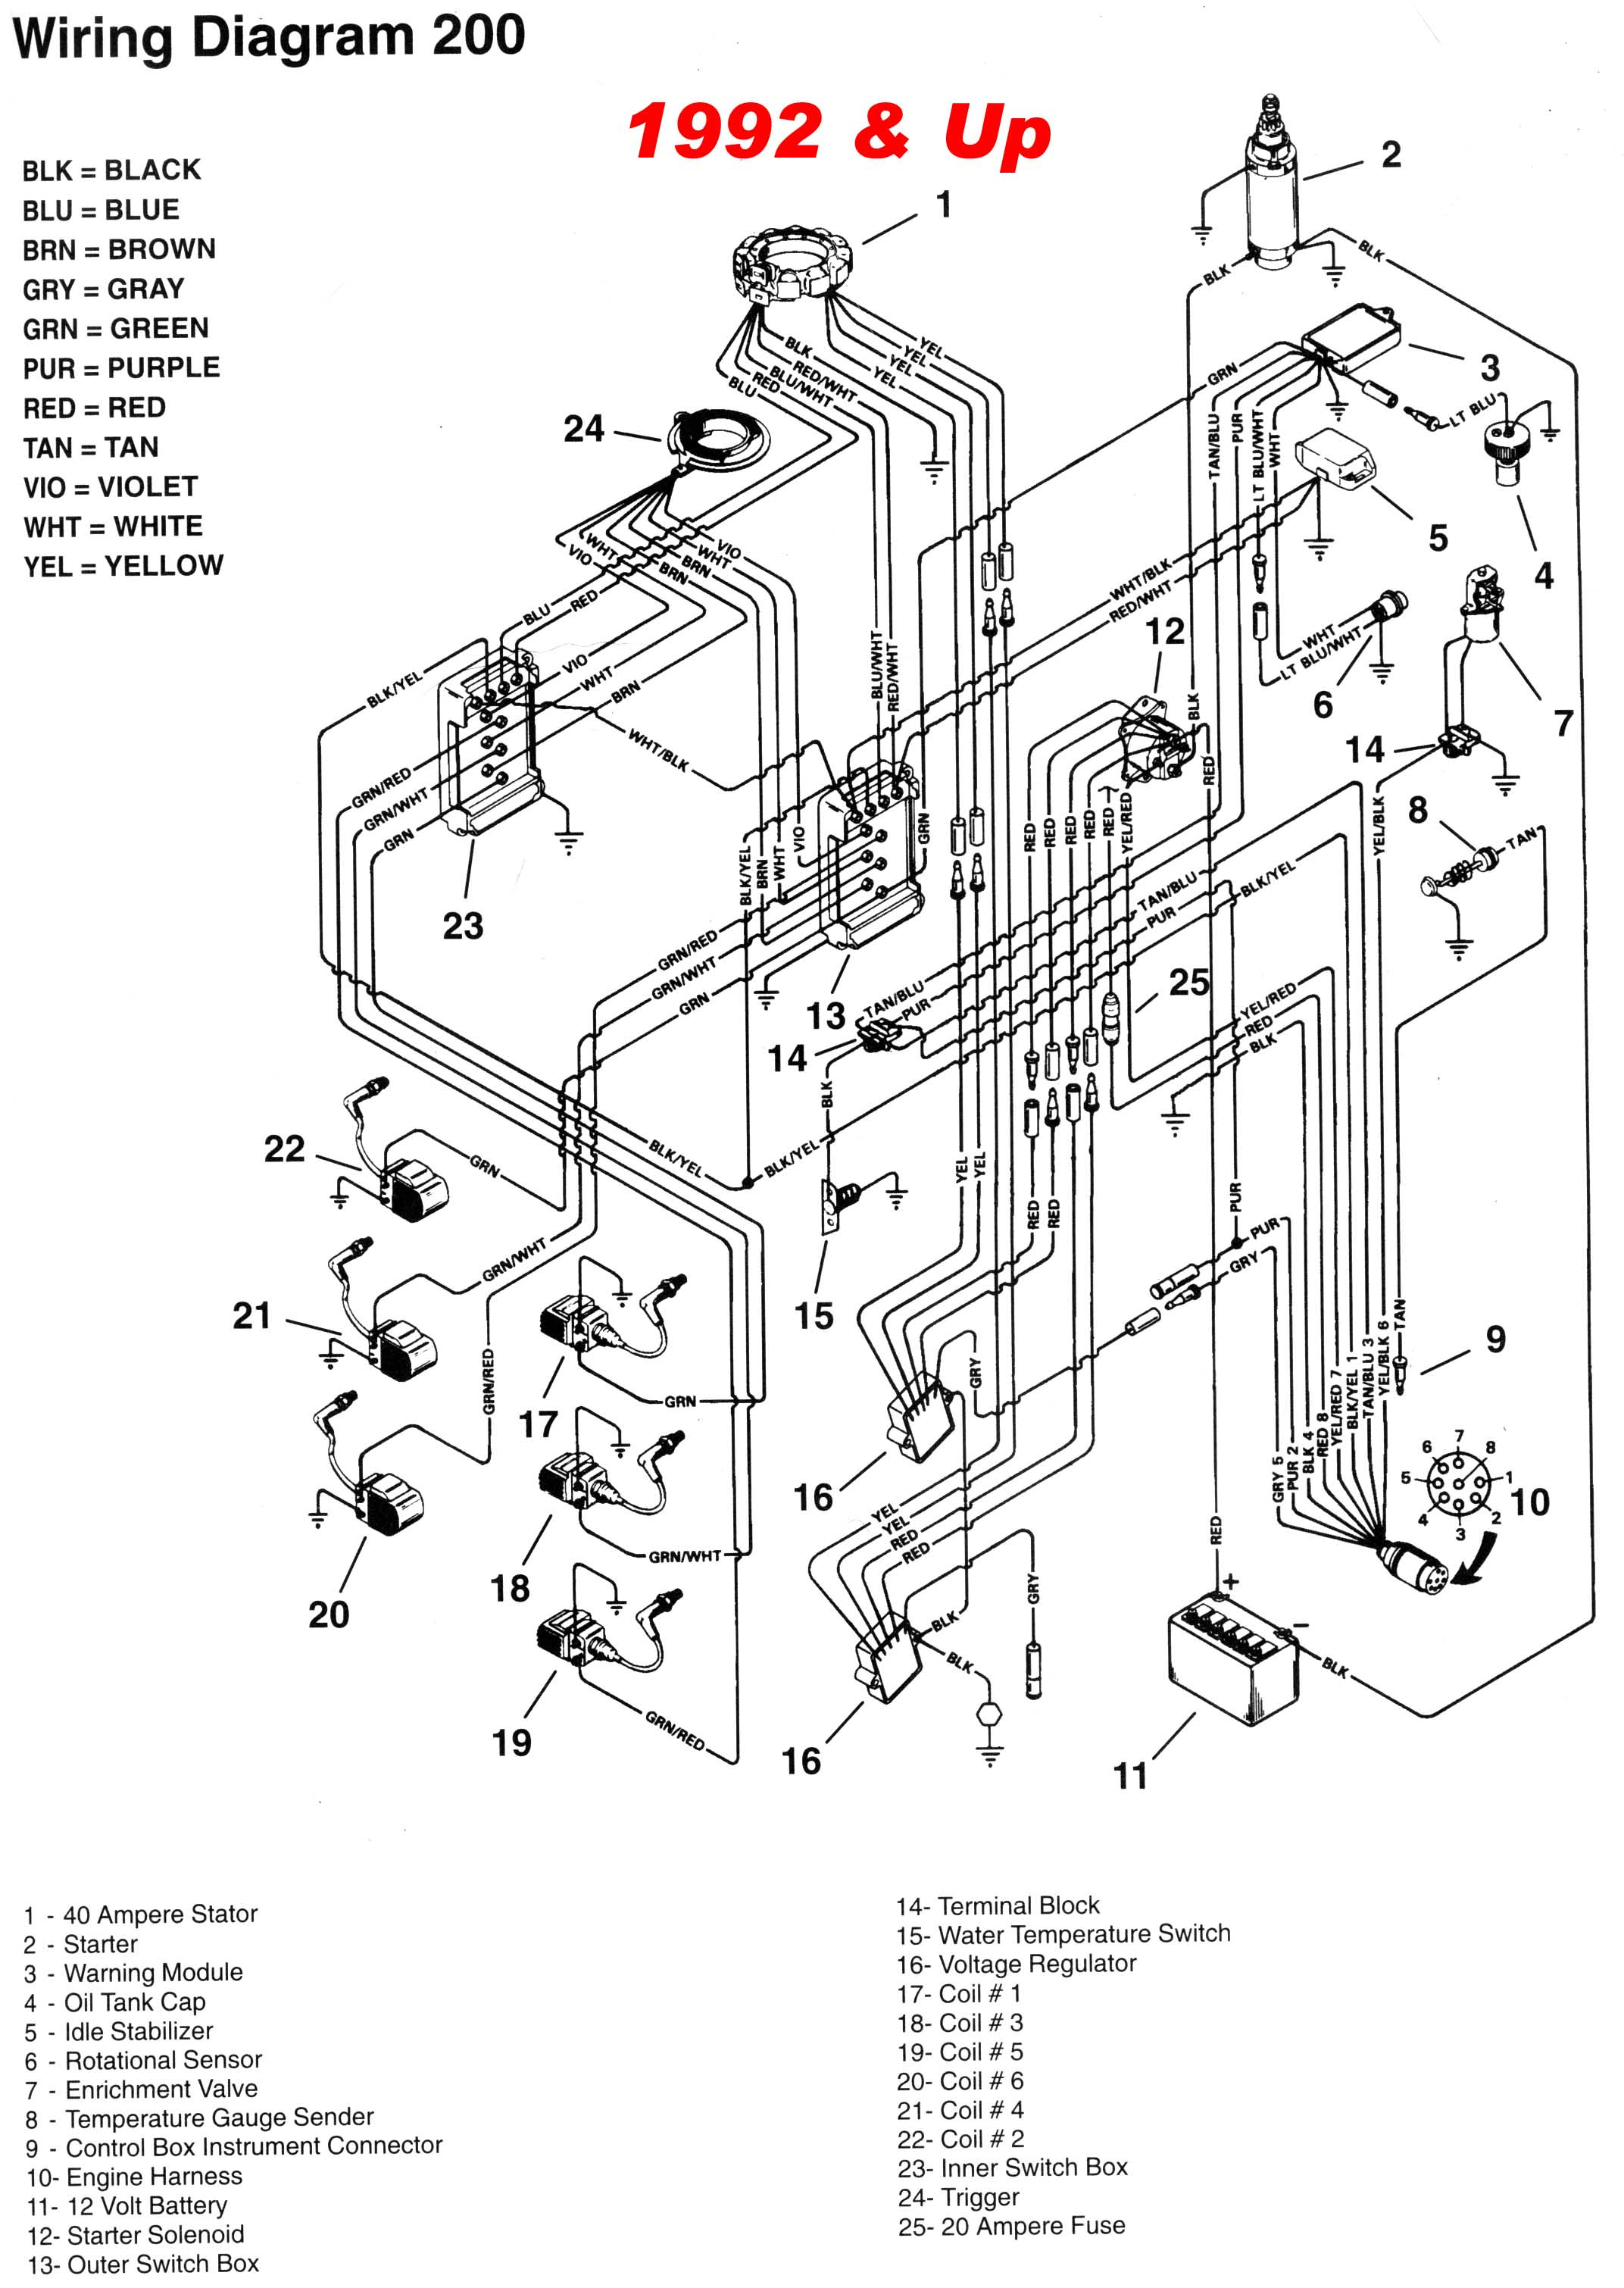 Suzuki Outboard Wiring Harness Diagram - Wiring Diagram Detailed - Yamaha Outboard Wiring Harness Diagram